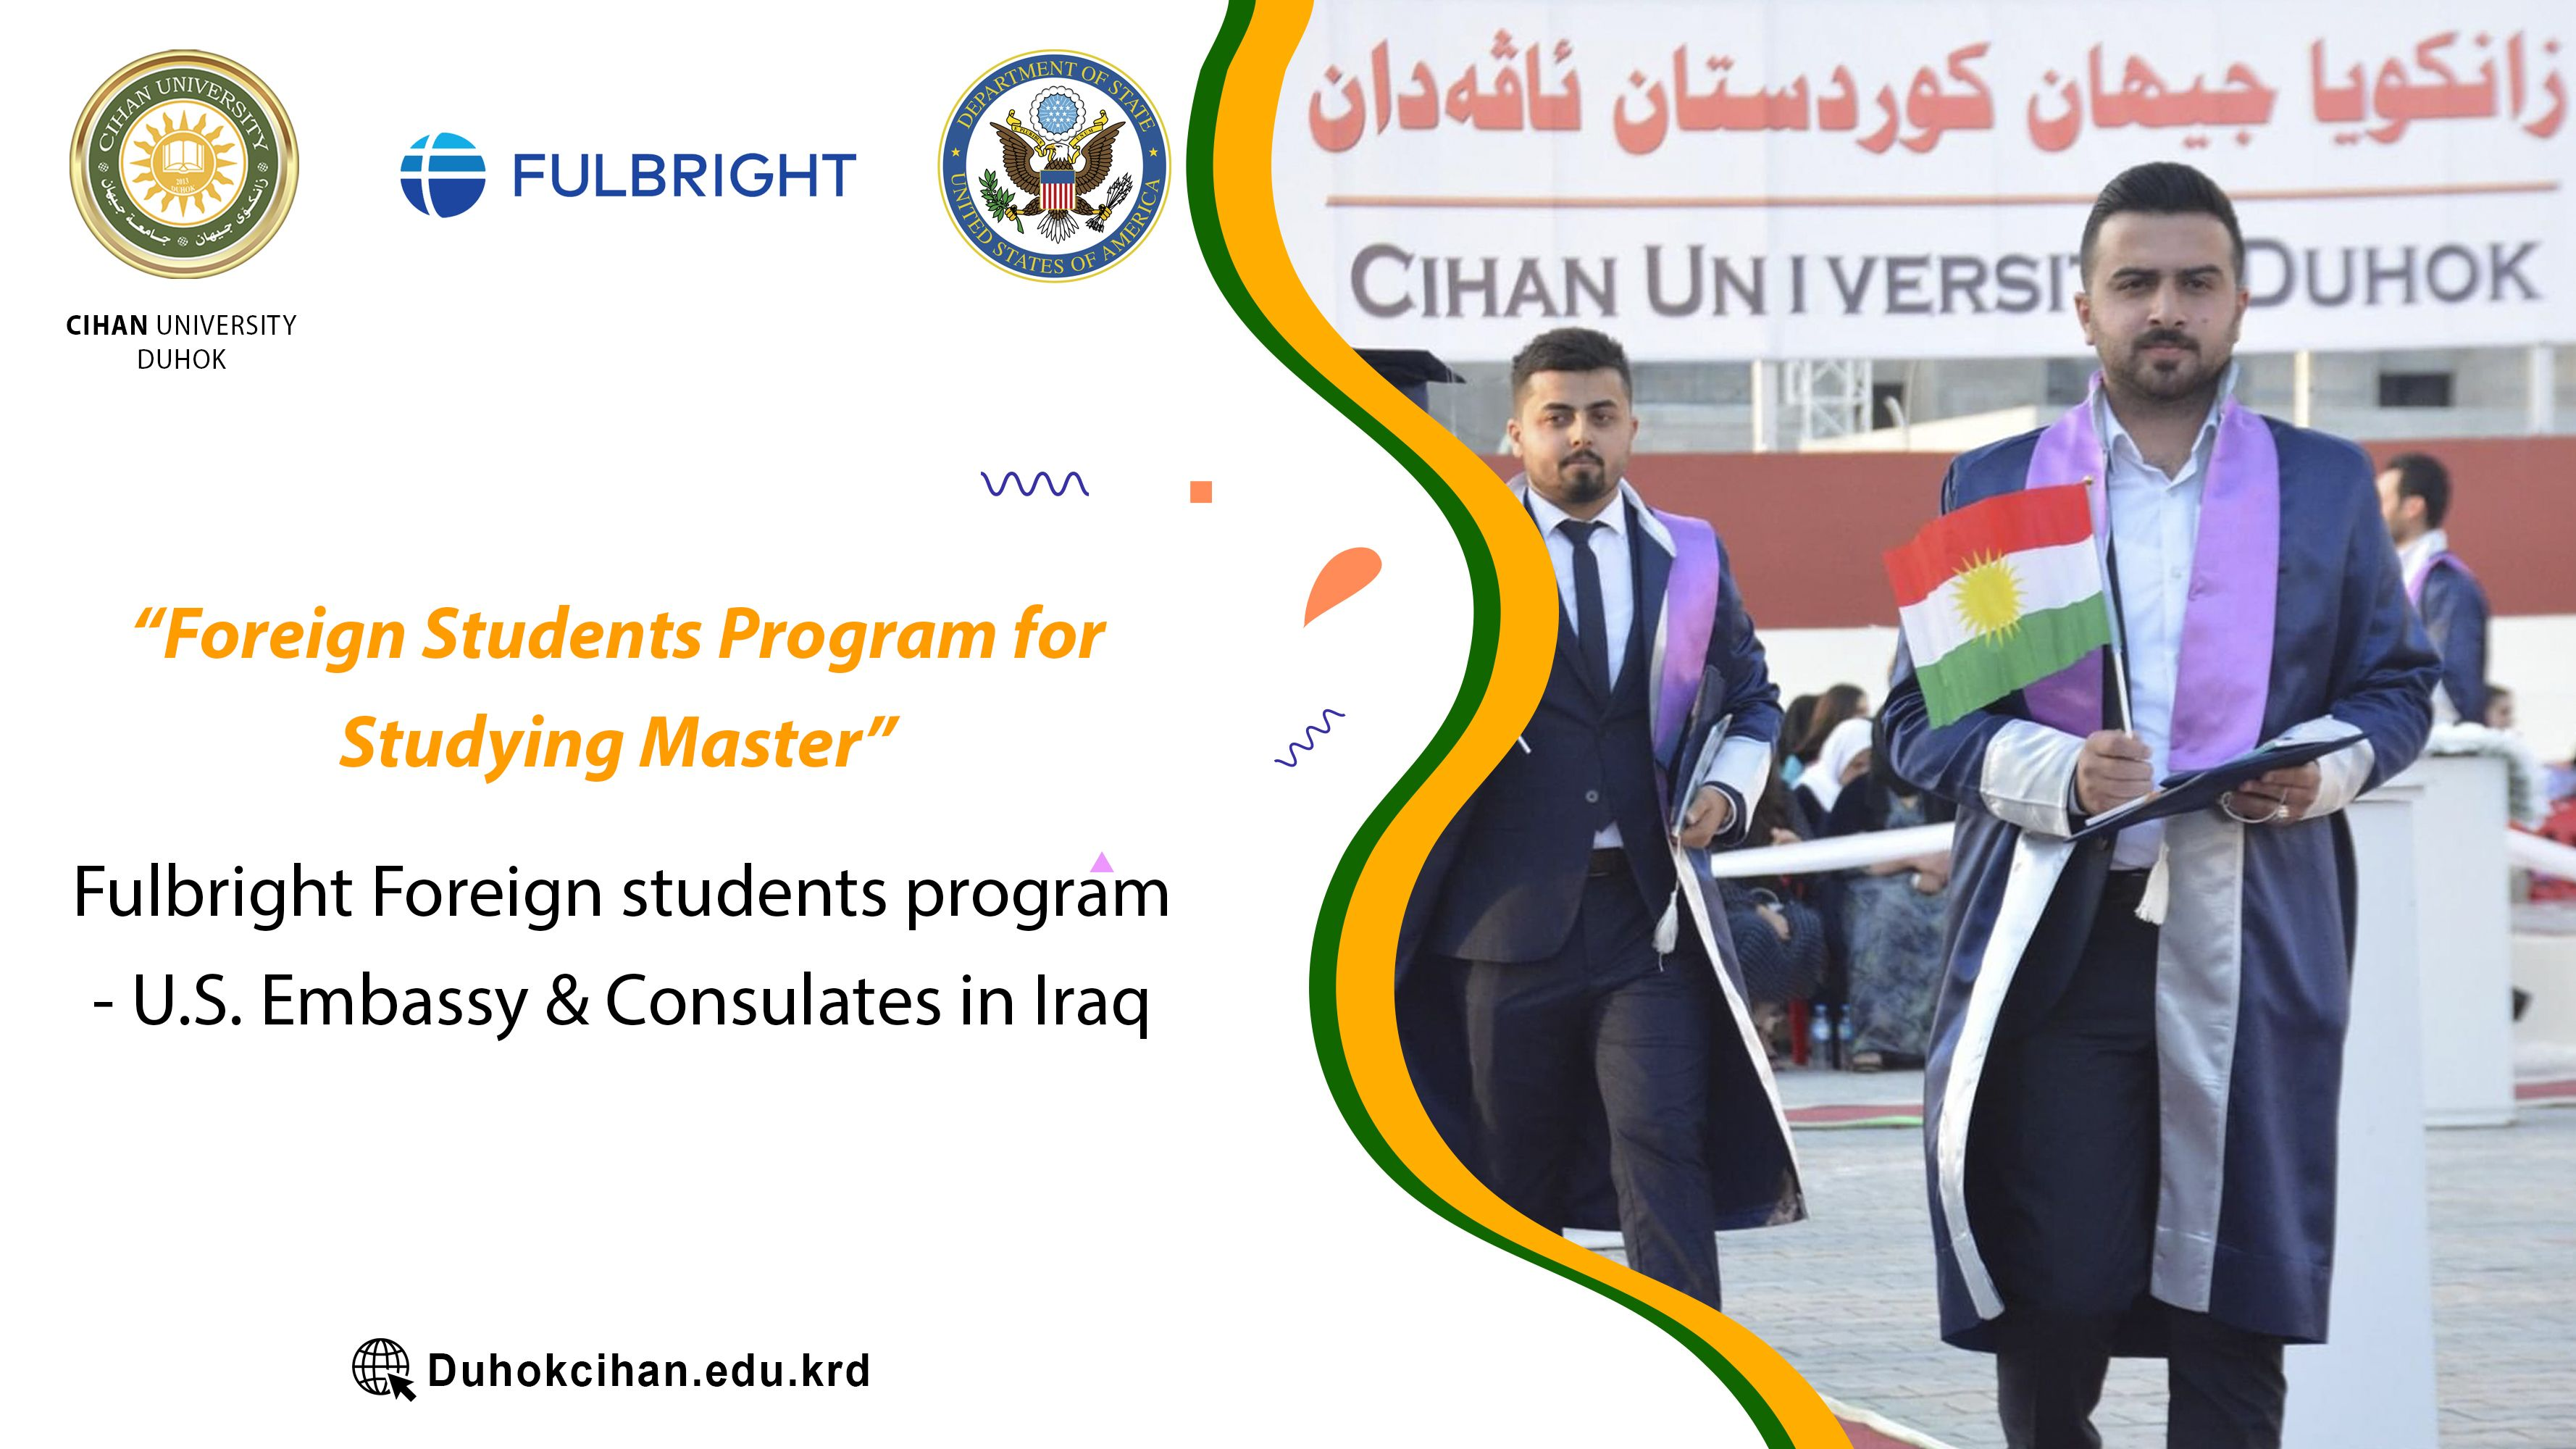 Applications for the 2022-2023 Fulbright Foreign Student Program